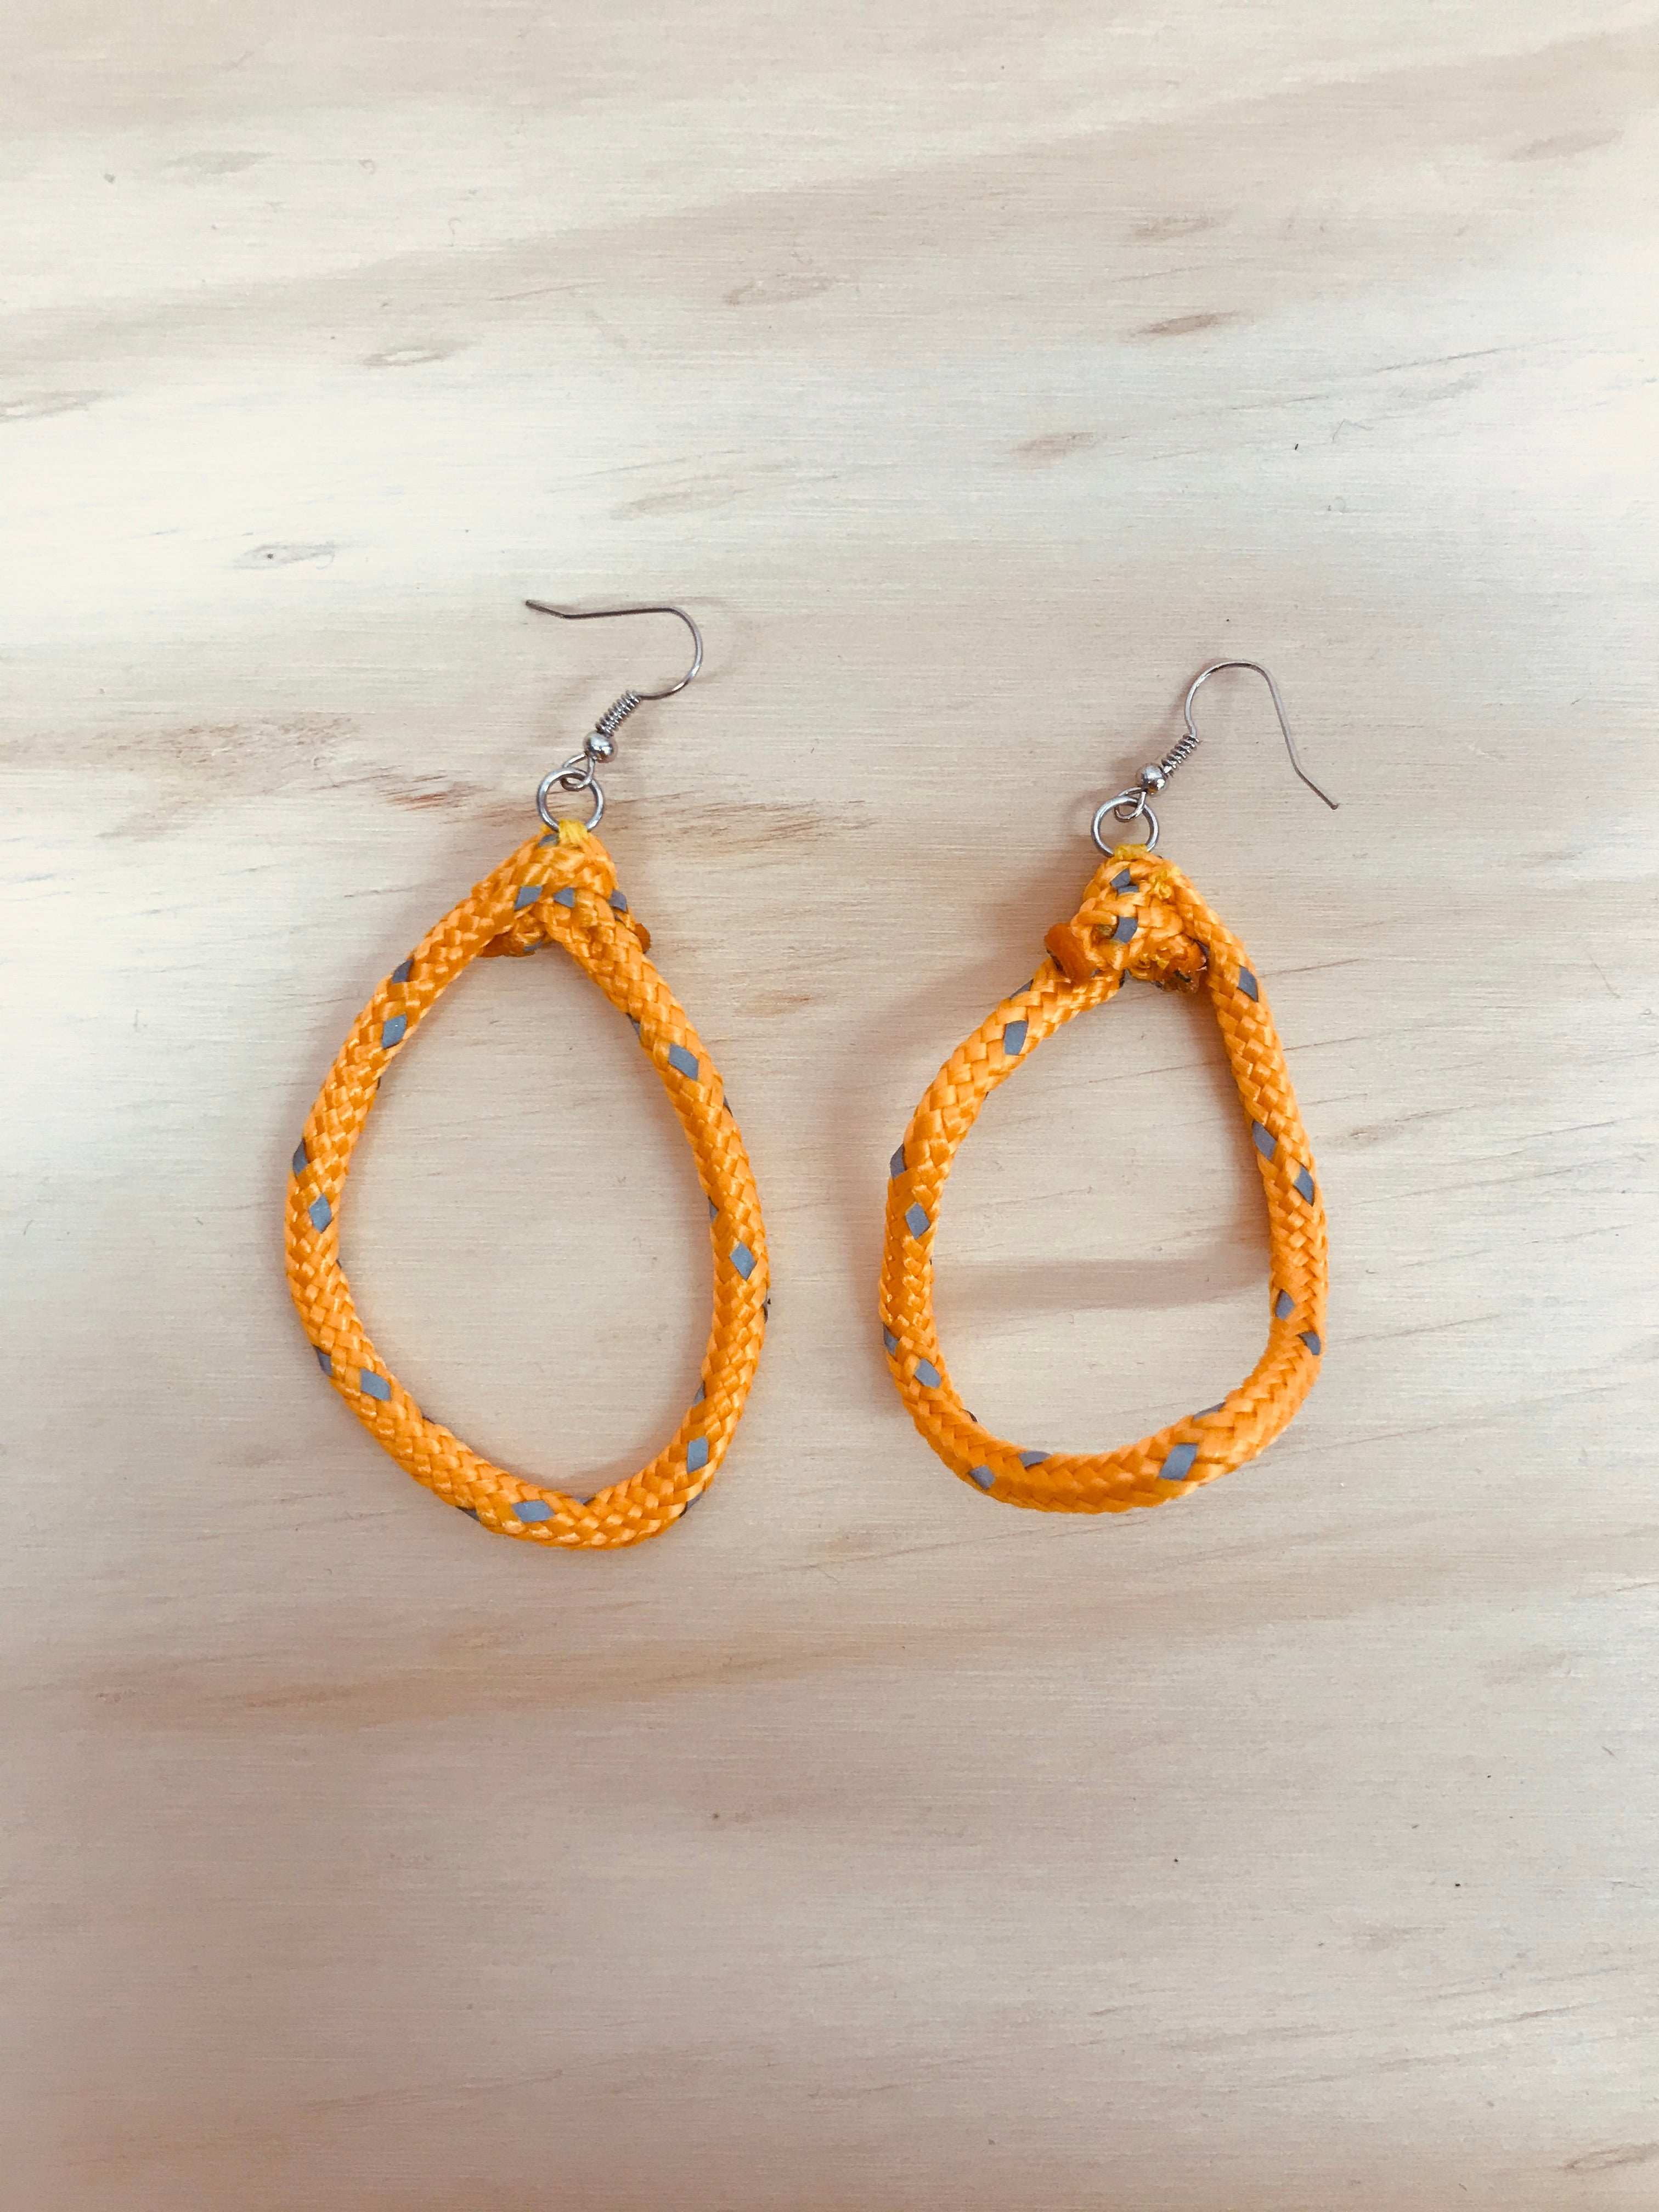 HYBRID CELLS - Shapeshifter Earrings Orange (Large)